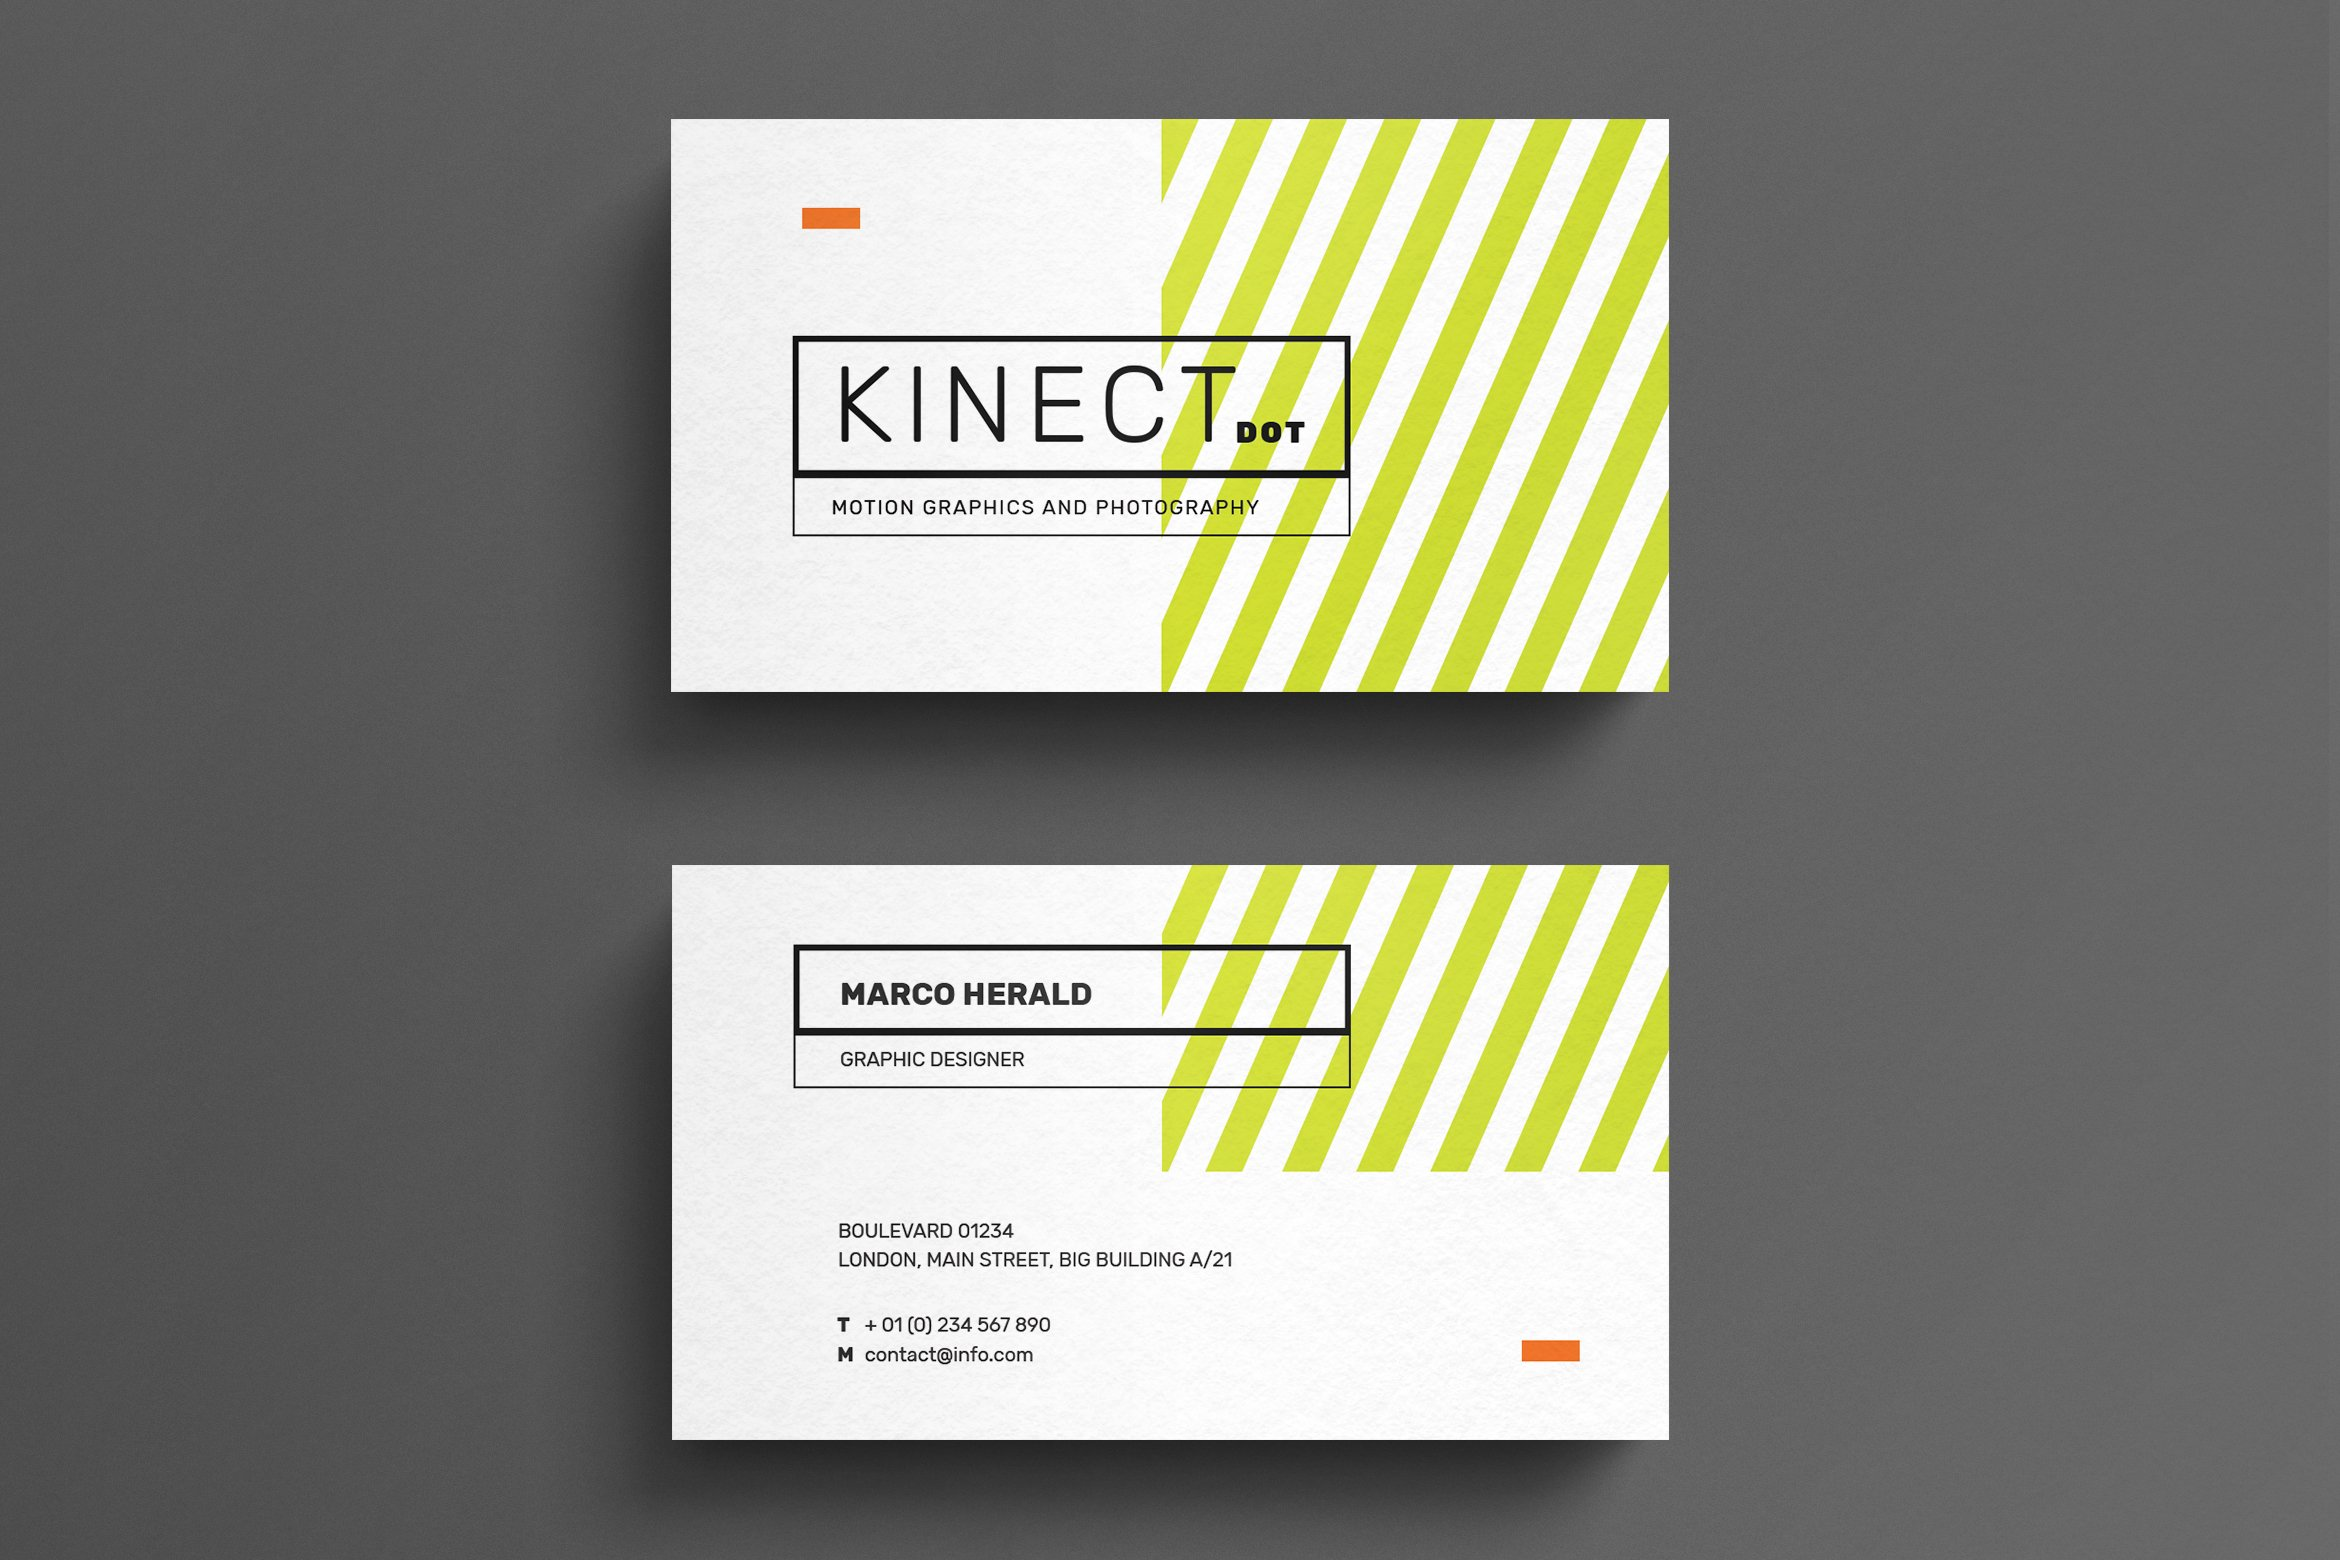 Beautiful Business Card Contact Info Images - Business Card Ideas ...